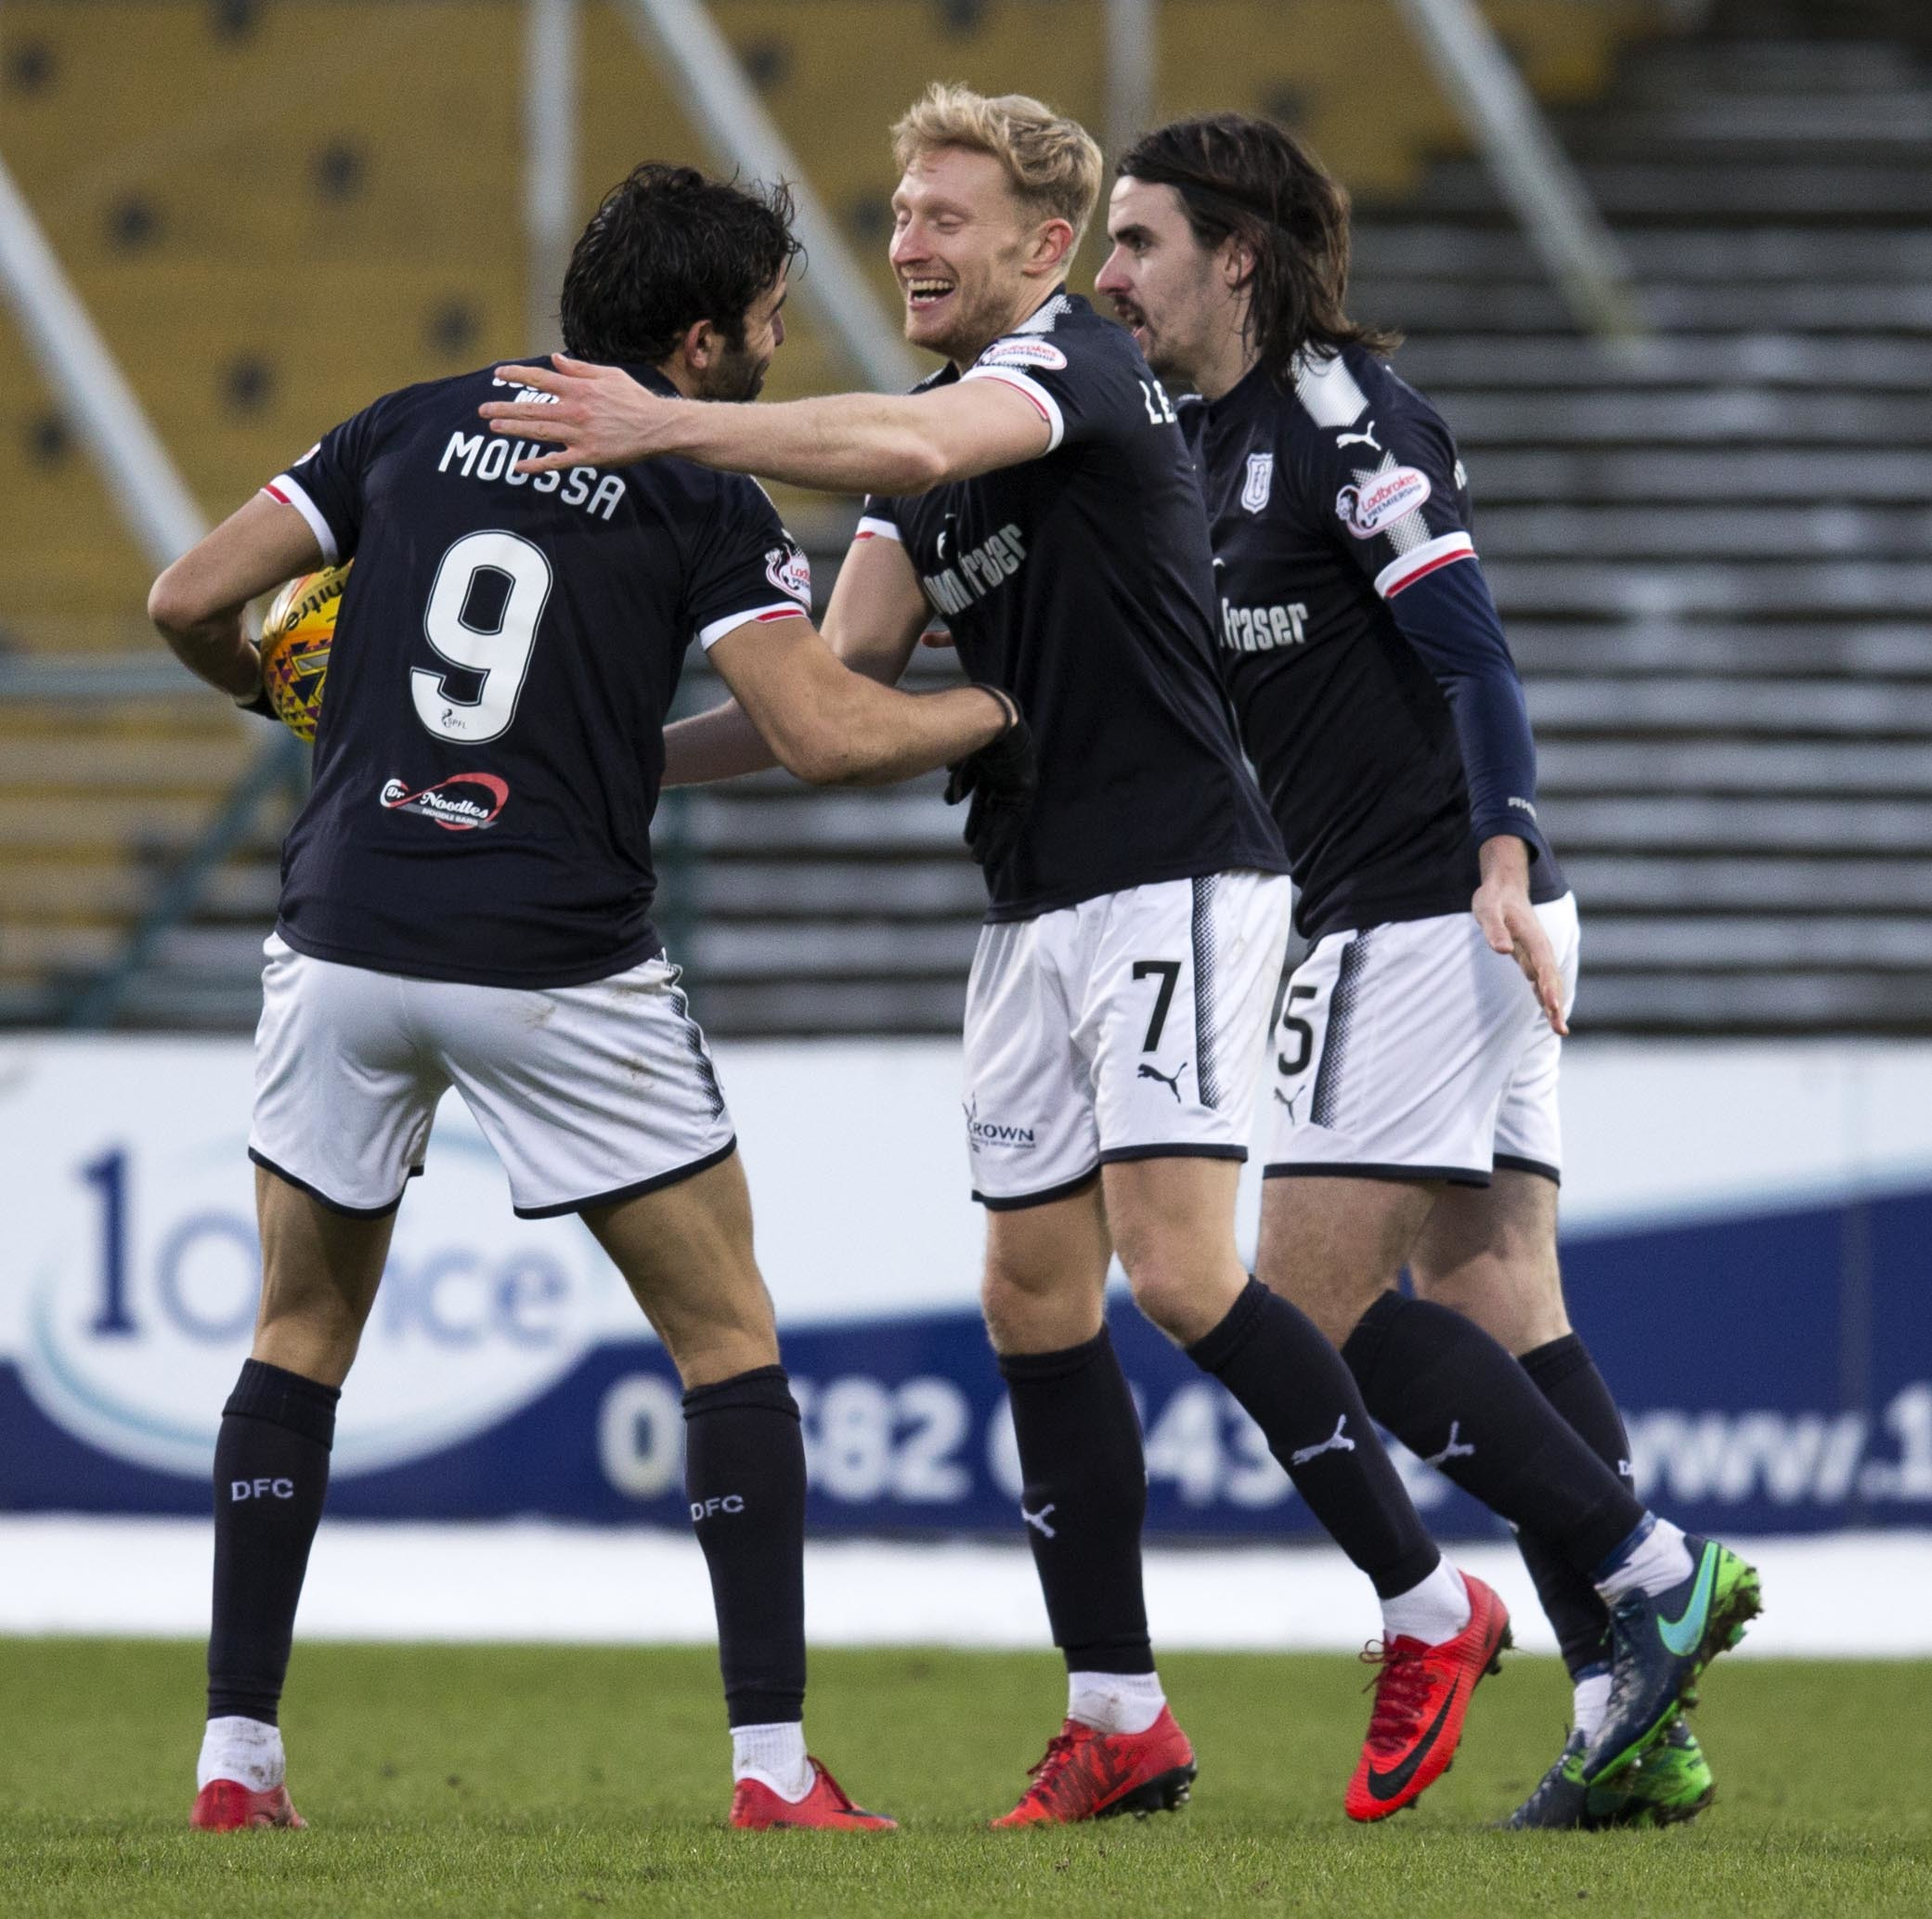 The Dundee player celebrate their first goal.